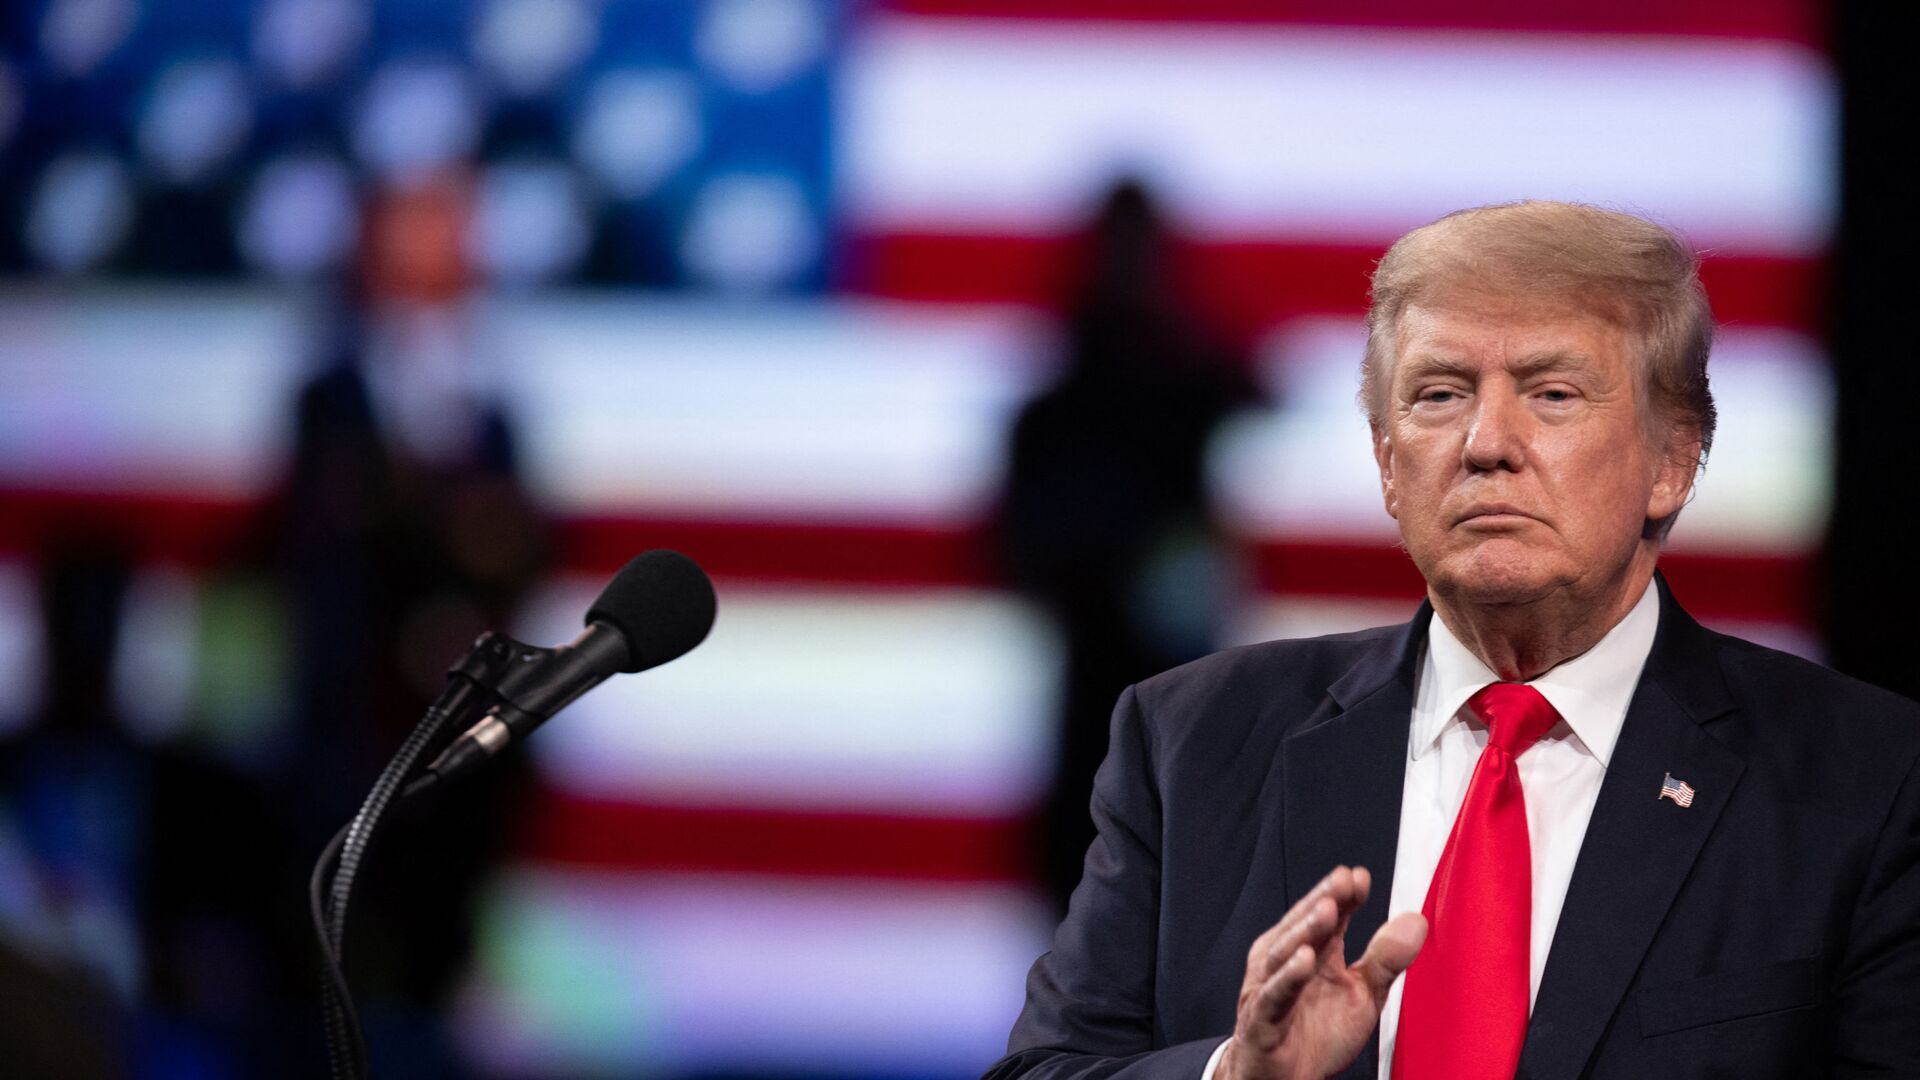 Former US President Donald Trump speaks at the Conservative Political Action Conference (CPAC) in Dallas, Texas on July 11, 2021 - Sputnik International, 1920, 04.08.2021